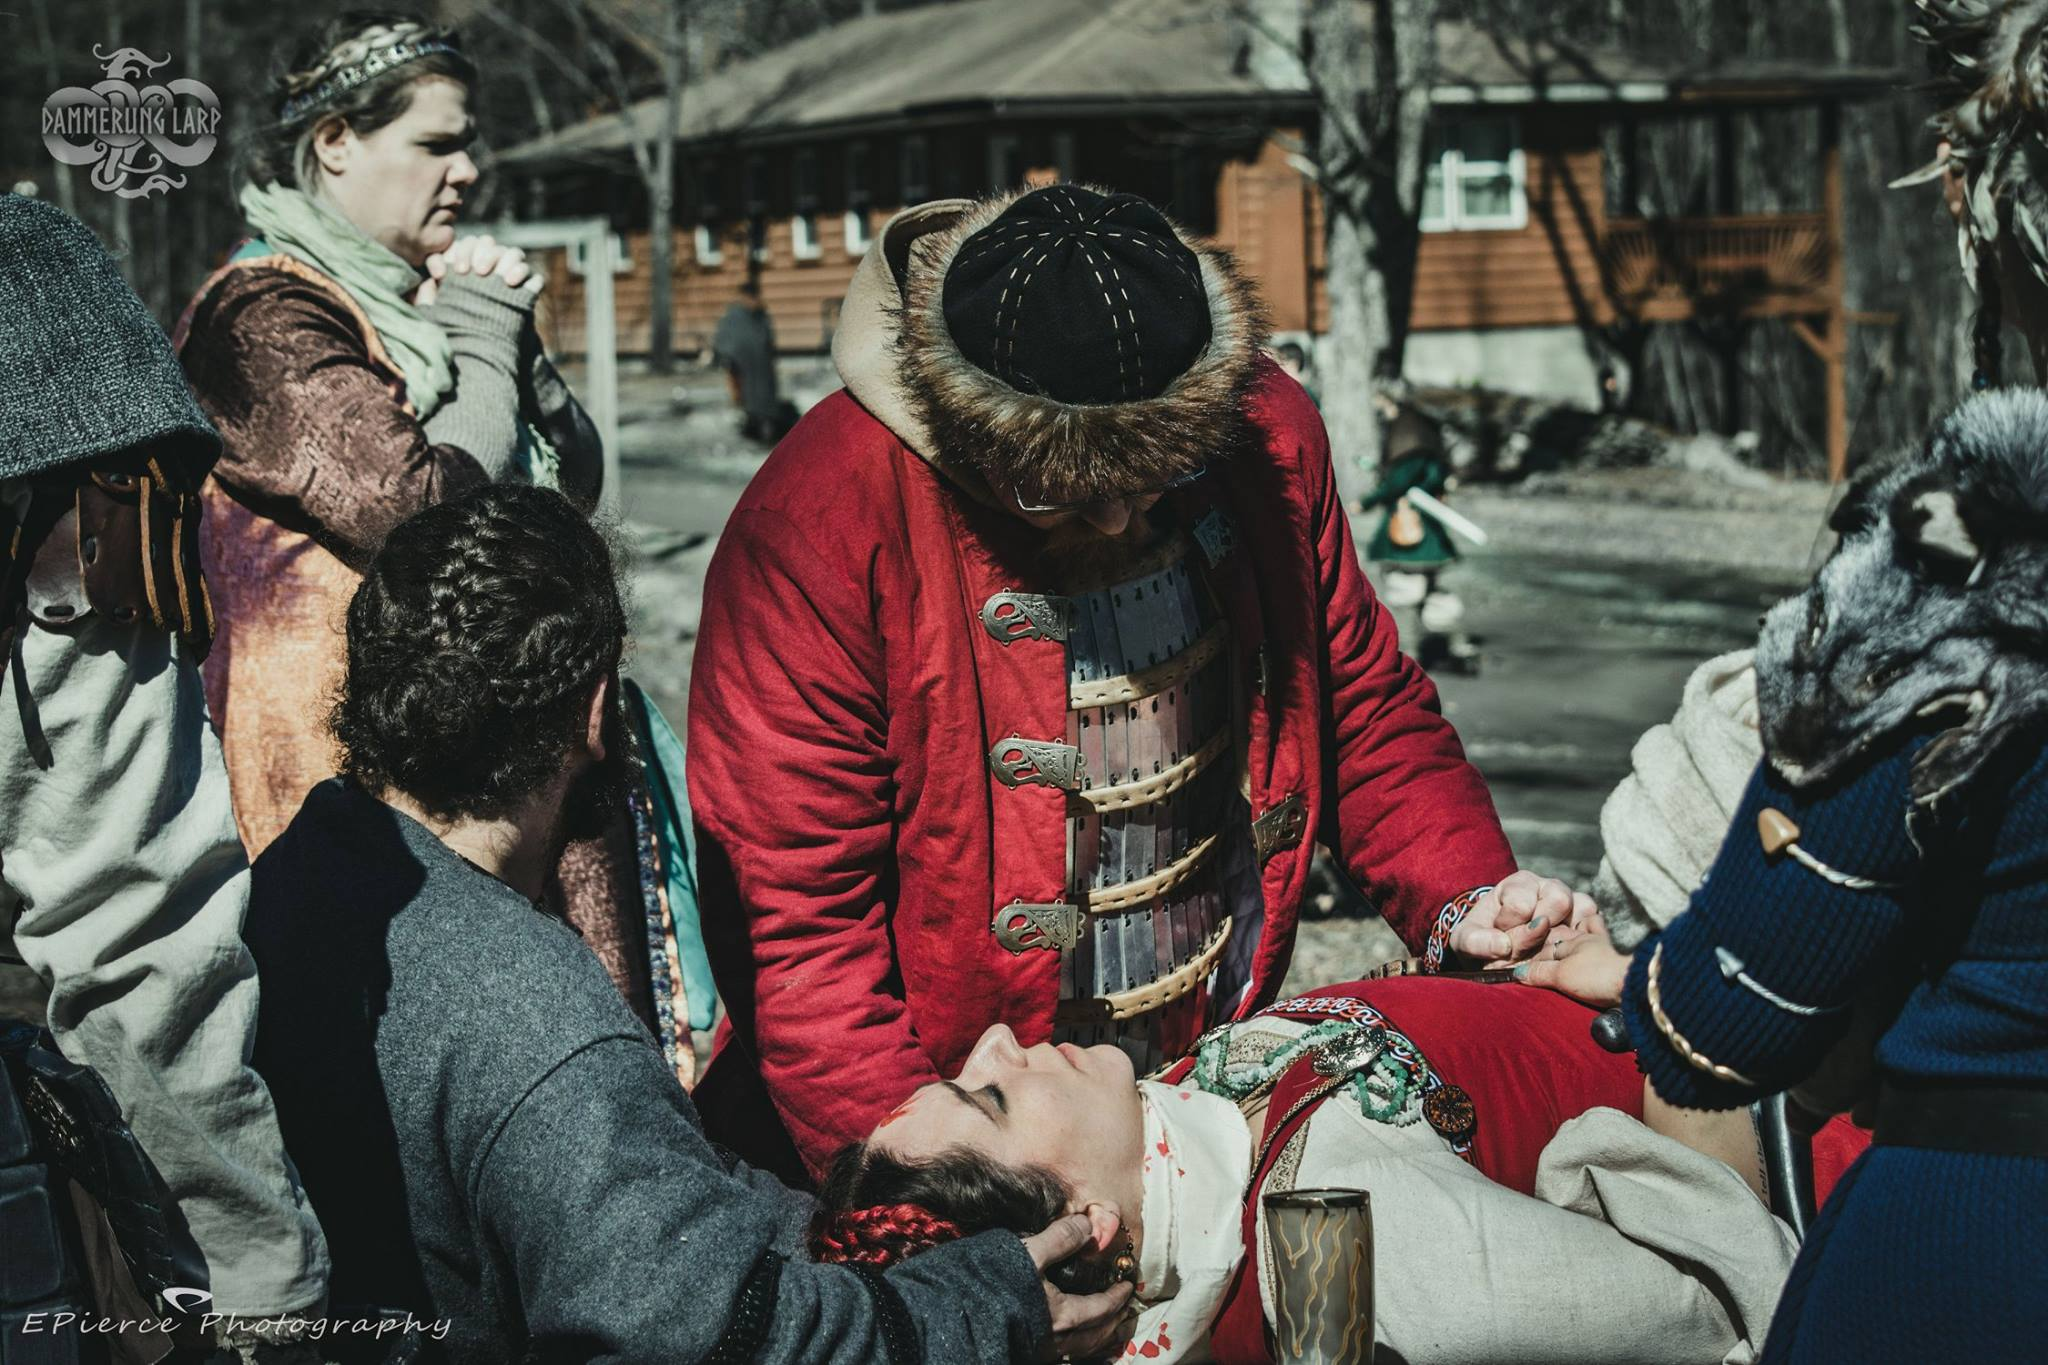 A man in viking clothing holds the hand of an unconscious, bloodied woman on a table as their religious adviser looks on.